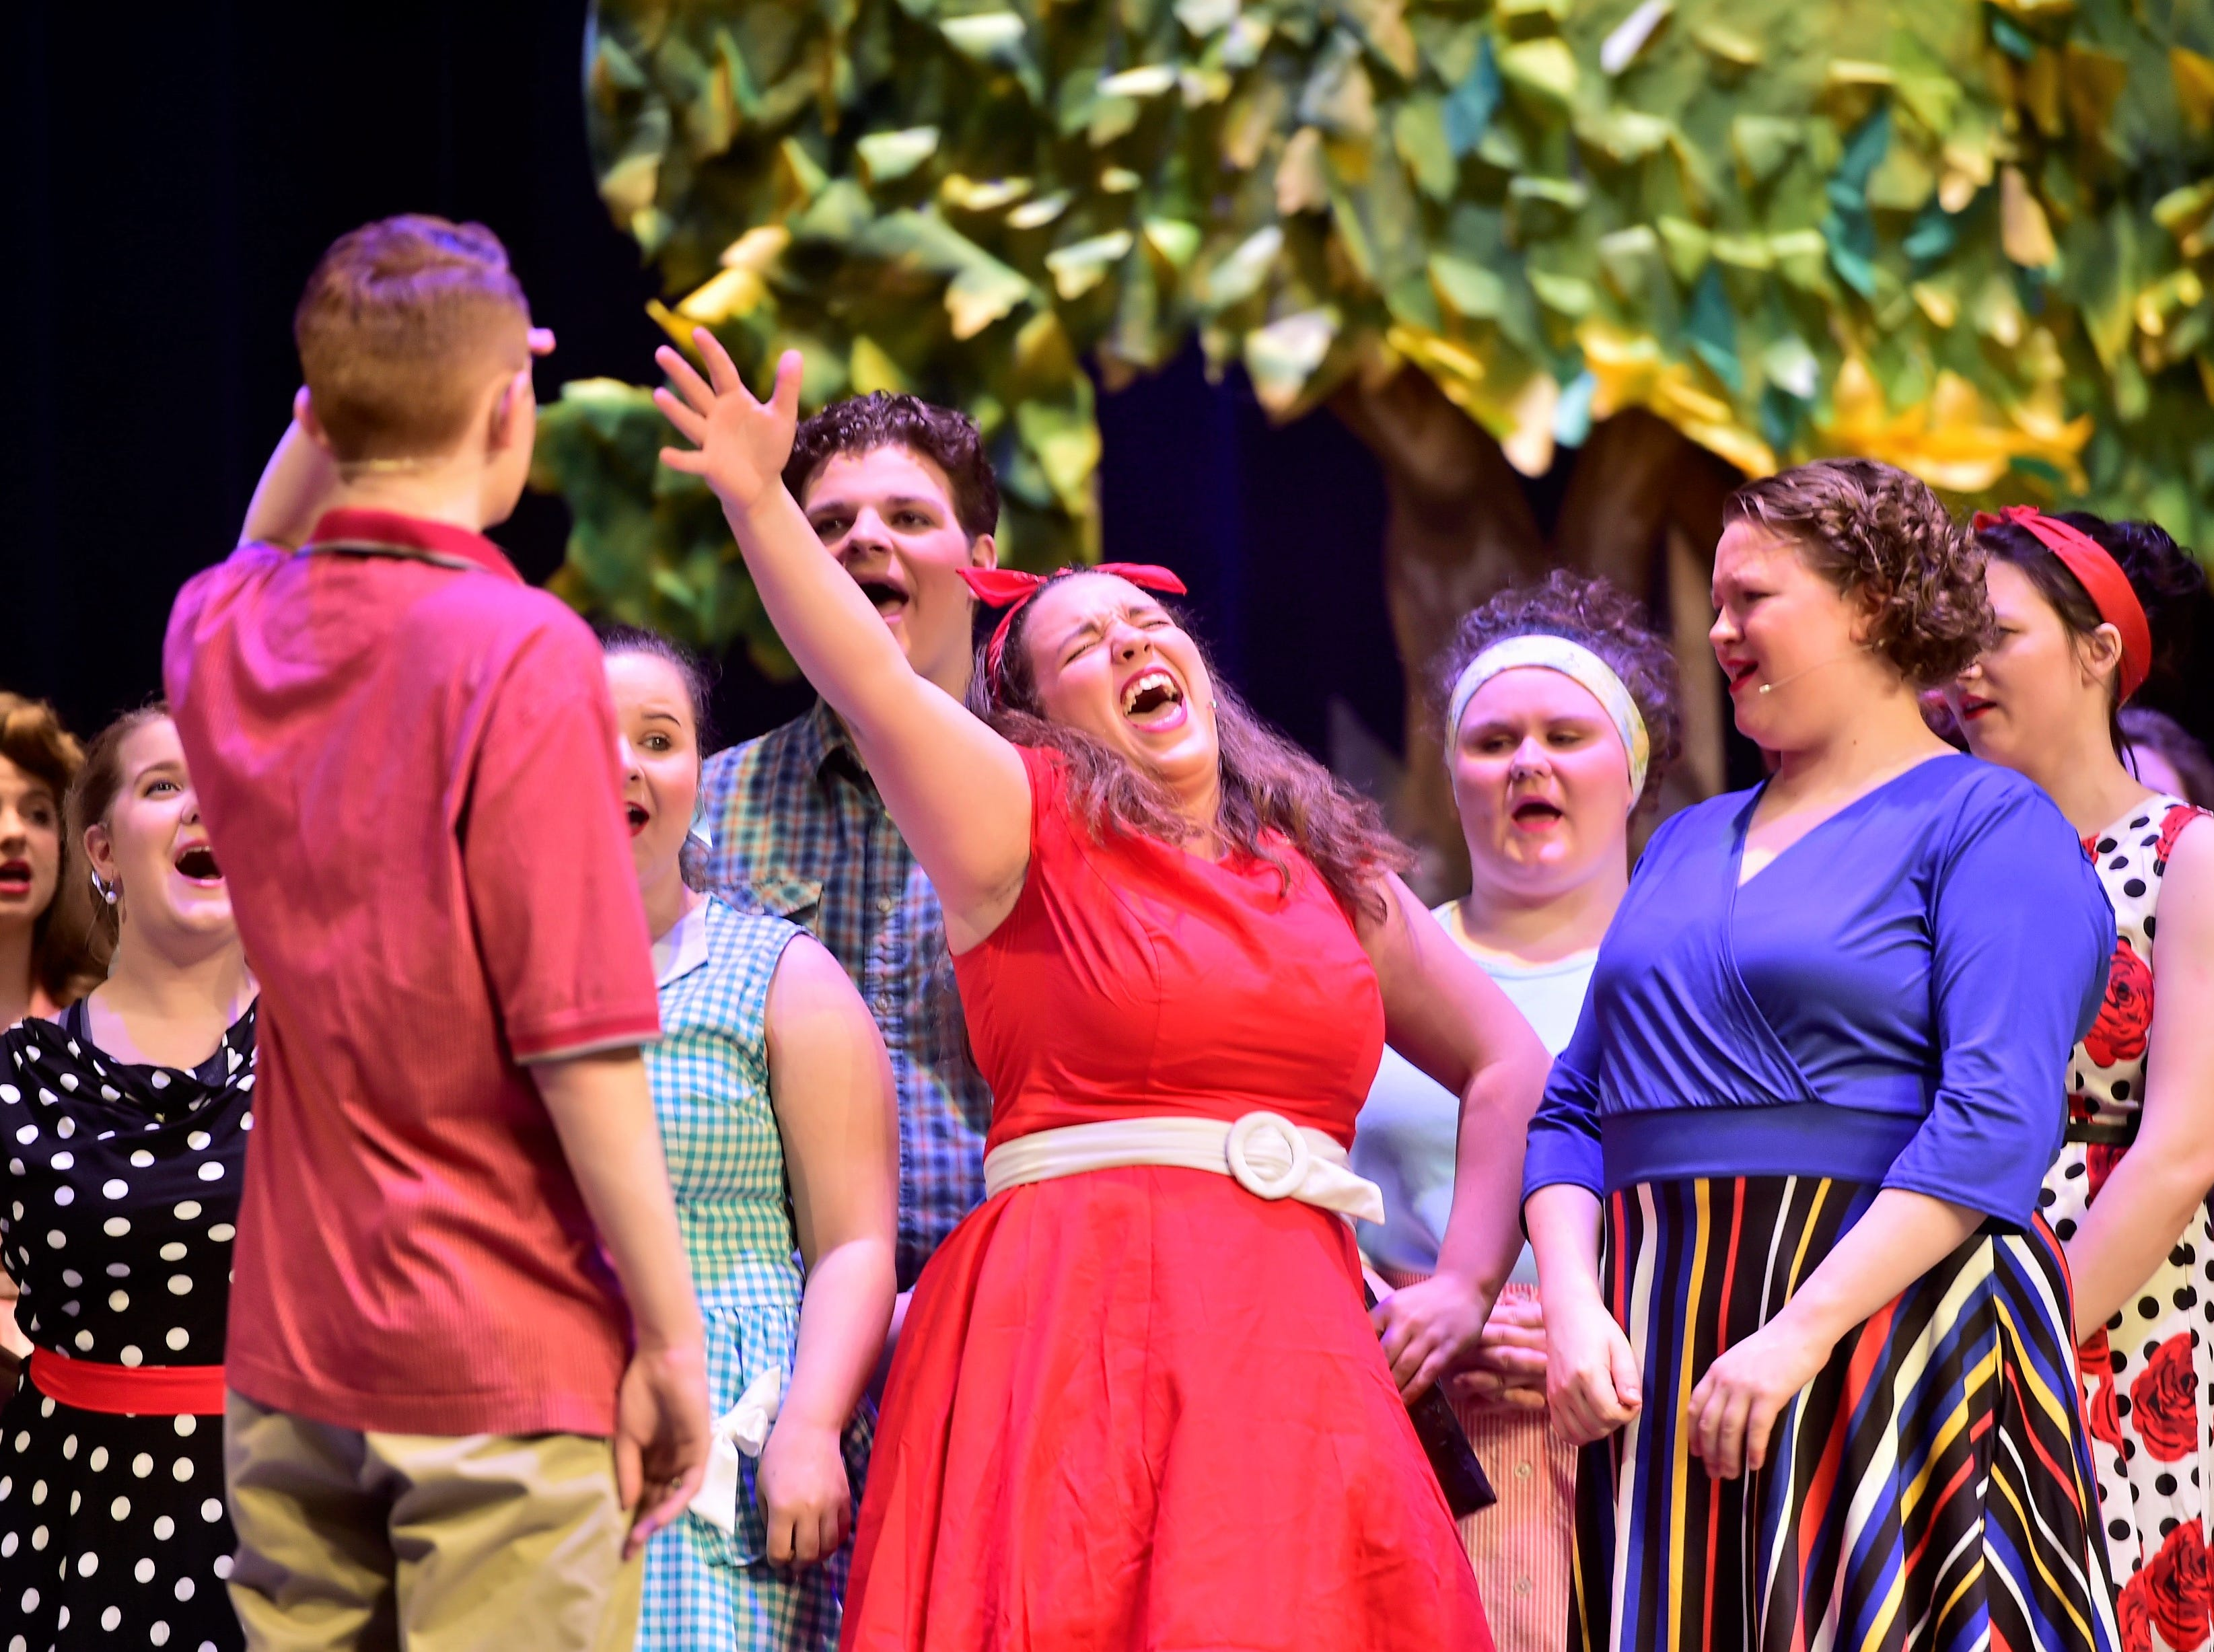 """Olivia Policicchio (Brenda), center, sings while rehearsing a scene  from """"The Pajama Game,"""" on Sunday, March 10, 2019, at Waynesboro Area Senior High School. The musical, based on the 1953 novel, """"7 1/2 Cents"""" by Richard Bissell, tells the story of a pajama factory where workers are fighting for a raise of 7 1/2 cents. Showtimes for Waynesboro Area School District's All-School Production of """"The Pajama Game"""" are 7 p.m. Friday and Saturday, March 15 and 16, and 2 p.m. Sunday, March 17 in the high school auditorium. For choose-your-seat tickets, $10 for adults and $6 for children under 12, go to https://washsmusic.ticketleap.com/the-pajama-game/. General admission tickets will also be sold at the door."""